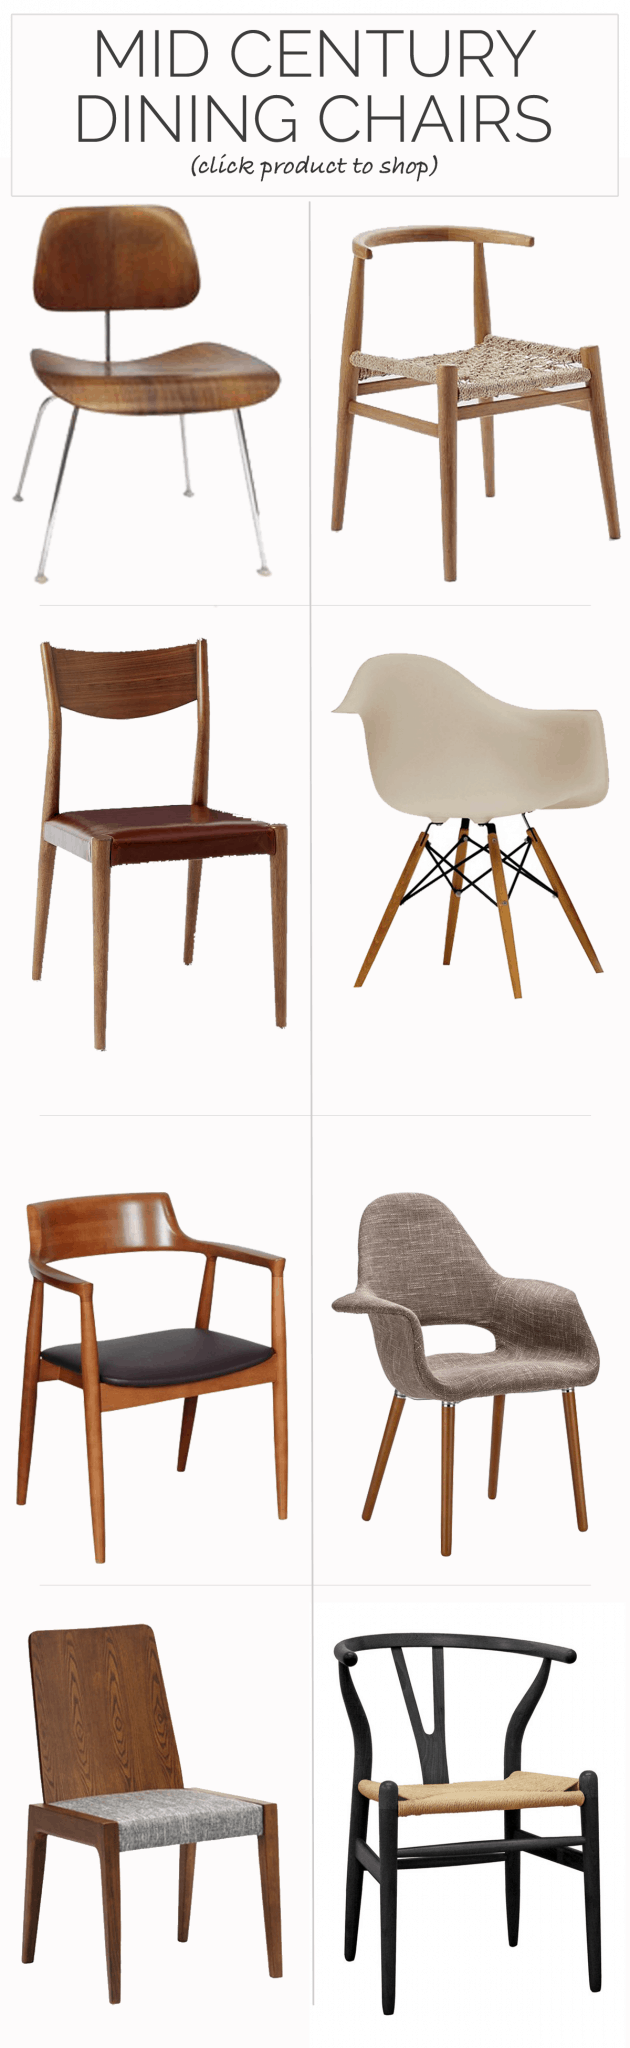 The Best Mid Century Dining Chairs My Style Vita : MID CENTURY DINING CHAIRSedited 1 from mystylevita.com size 1200 x 3900 png 1560kB